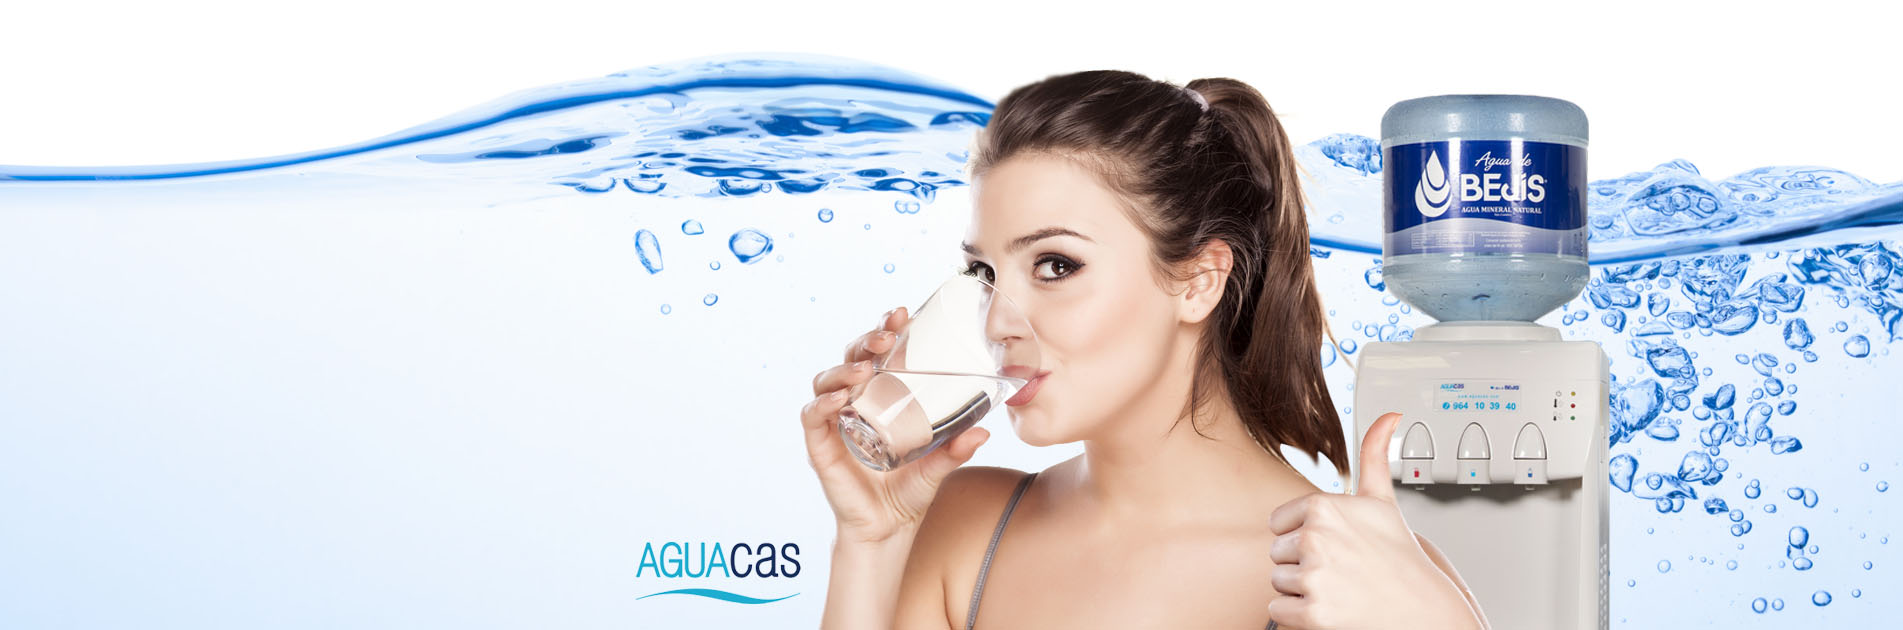 aguacas agua dispensadores castellon